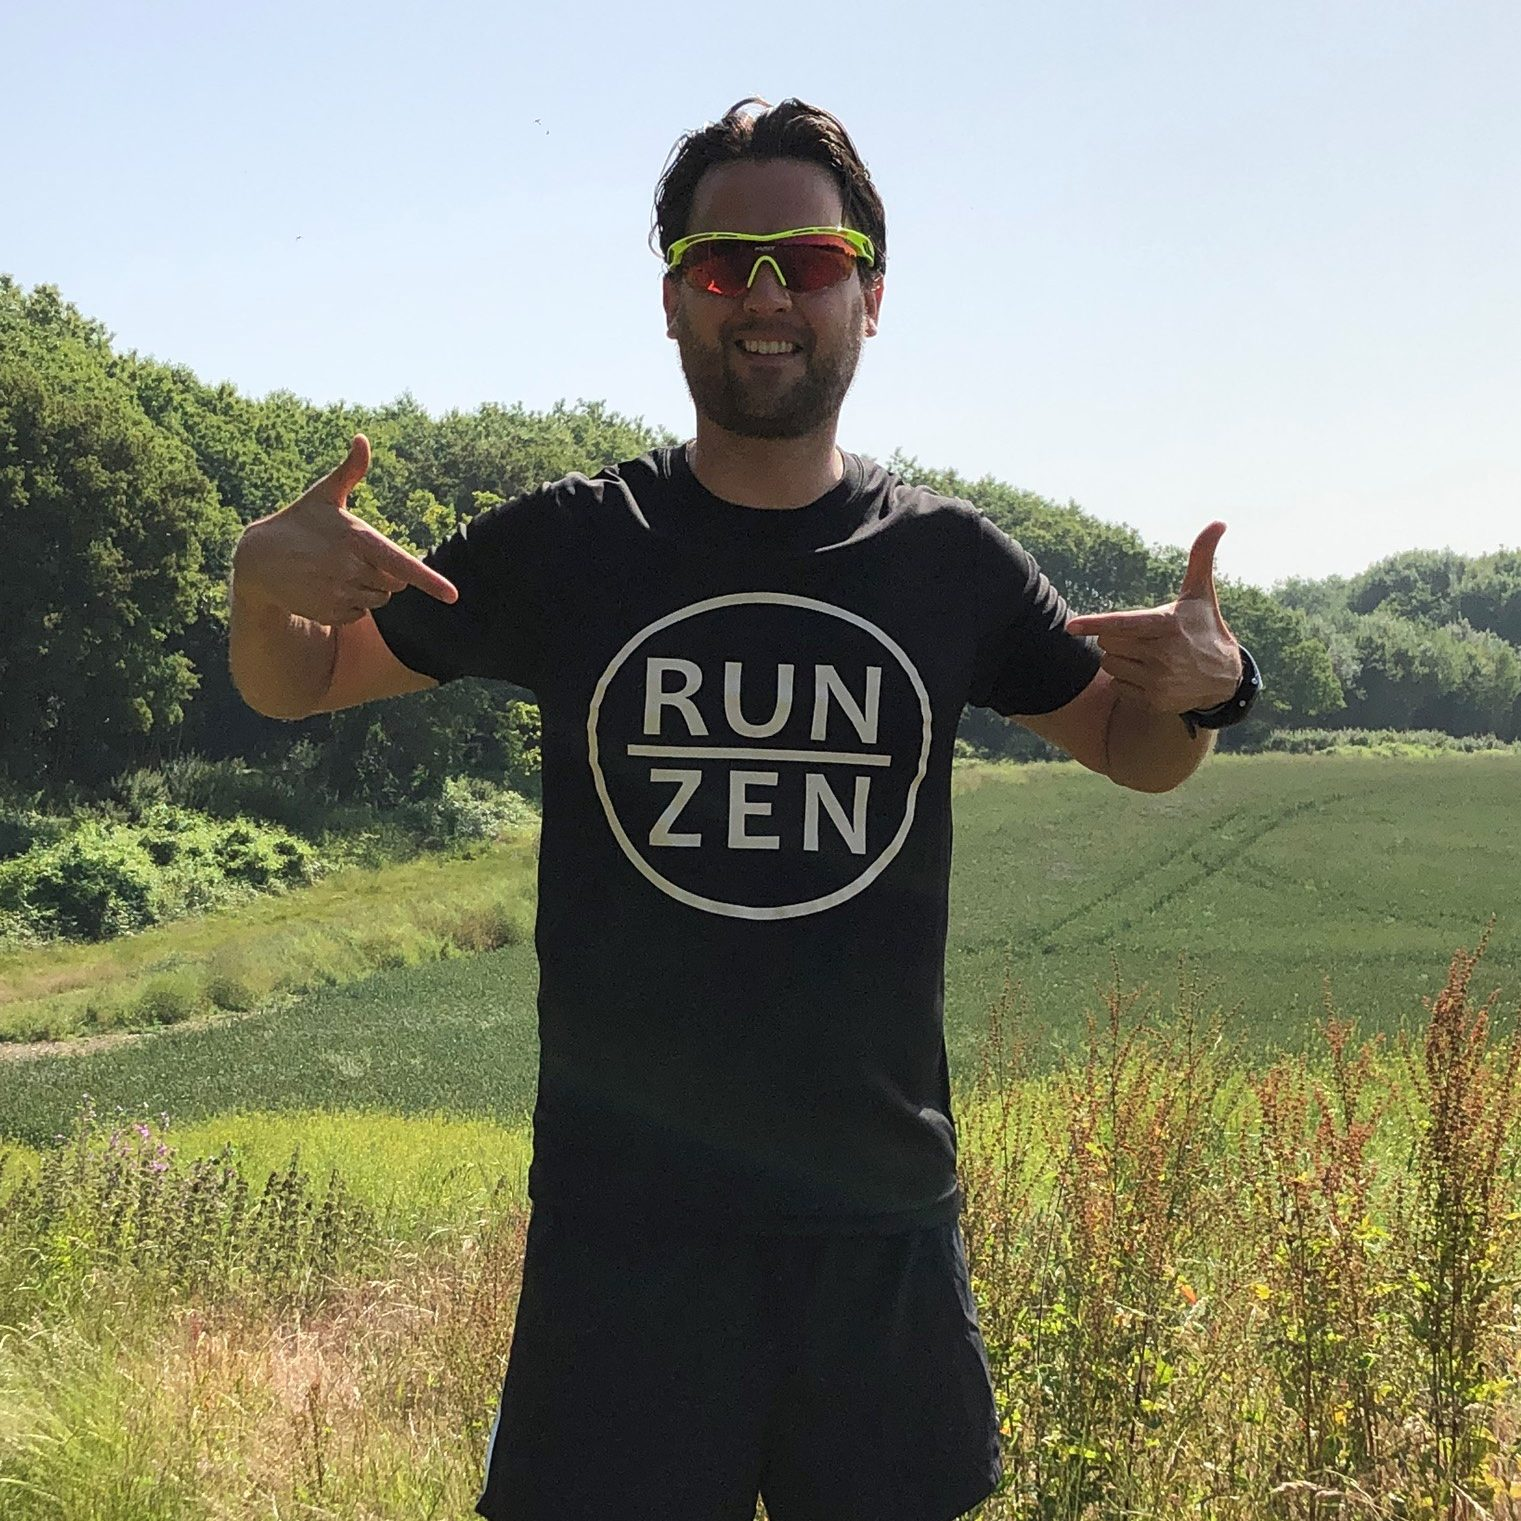 Mindful running teacher Cesare Saguato